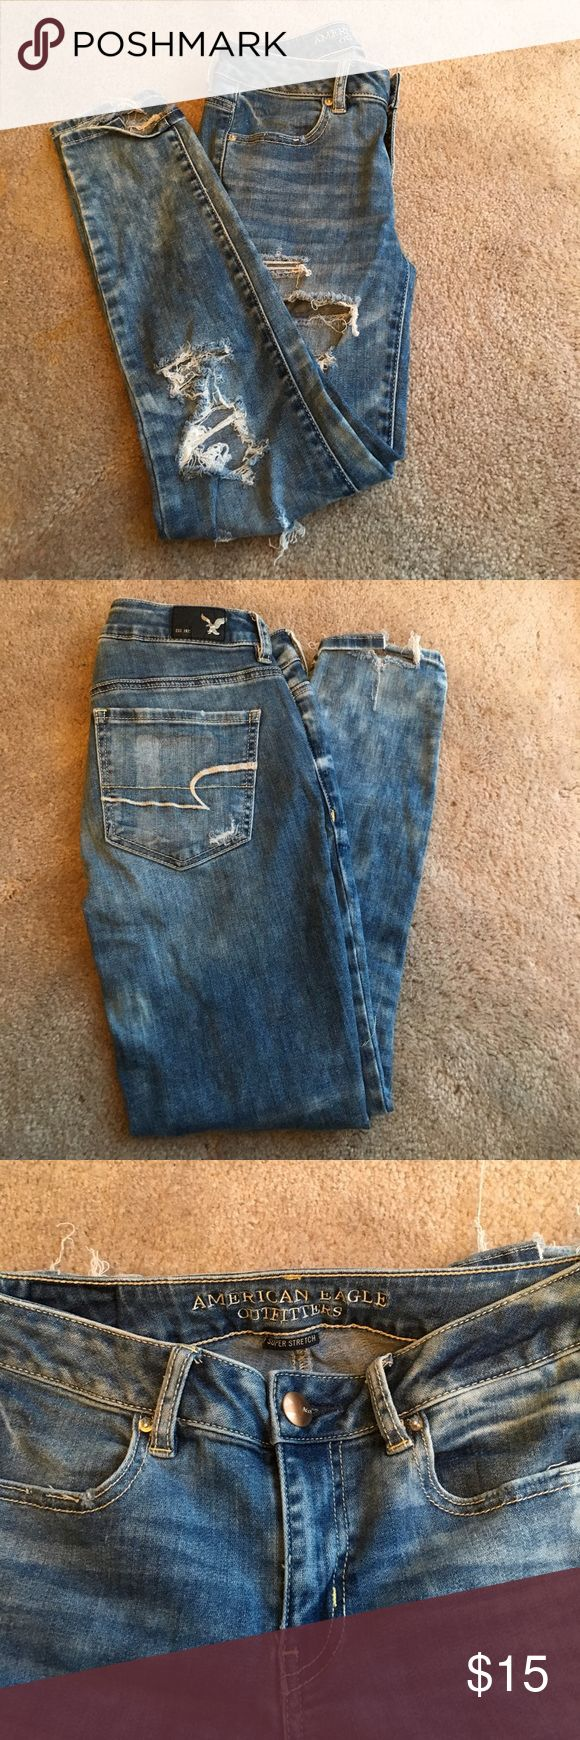 American Eagle ripped jeans Super cute jeans! Very stretchy. Only been worn a couple of times. Look new. American Eagle Outfitters Pants